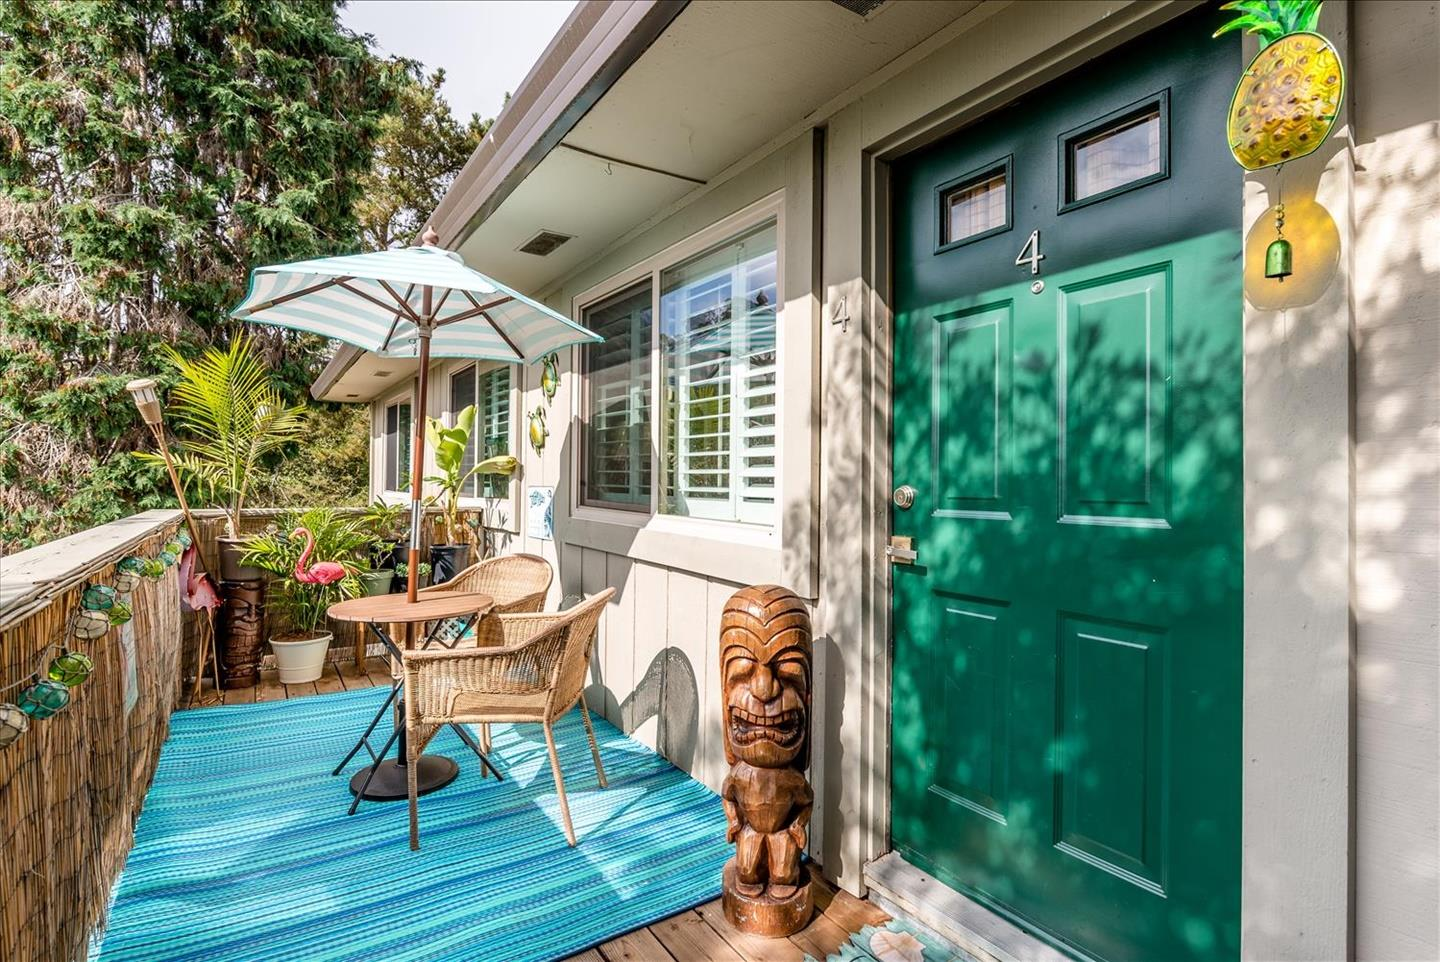 Imagine walking to beautiful New Brighton Beach every morning or evening, then strolling and dining in picturesque Capitola Village! Great location, easy access to Highway 1. Well-maintained and charming 2 bed 1 bath condo with large, sunny balcony and access to community pool. Beautiful wood floors and ready to enjoy. Don't miss this opportunity to invest in one of California's most beautiful coastal towns. Perfect for first-time buyers, smaller families, or as a vacation getaway!